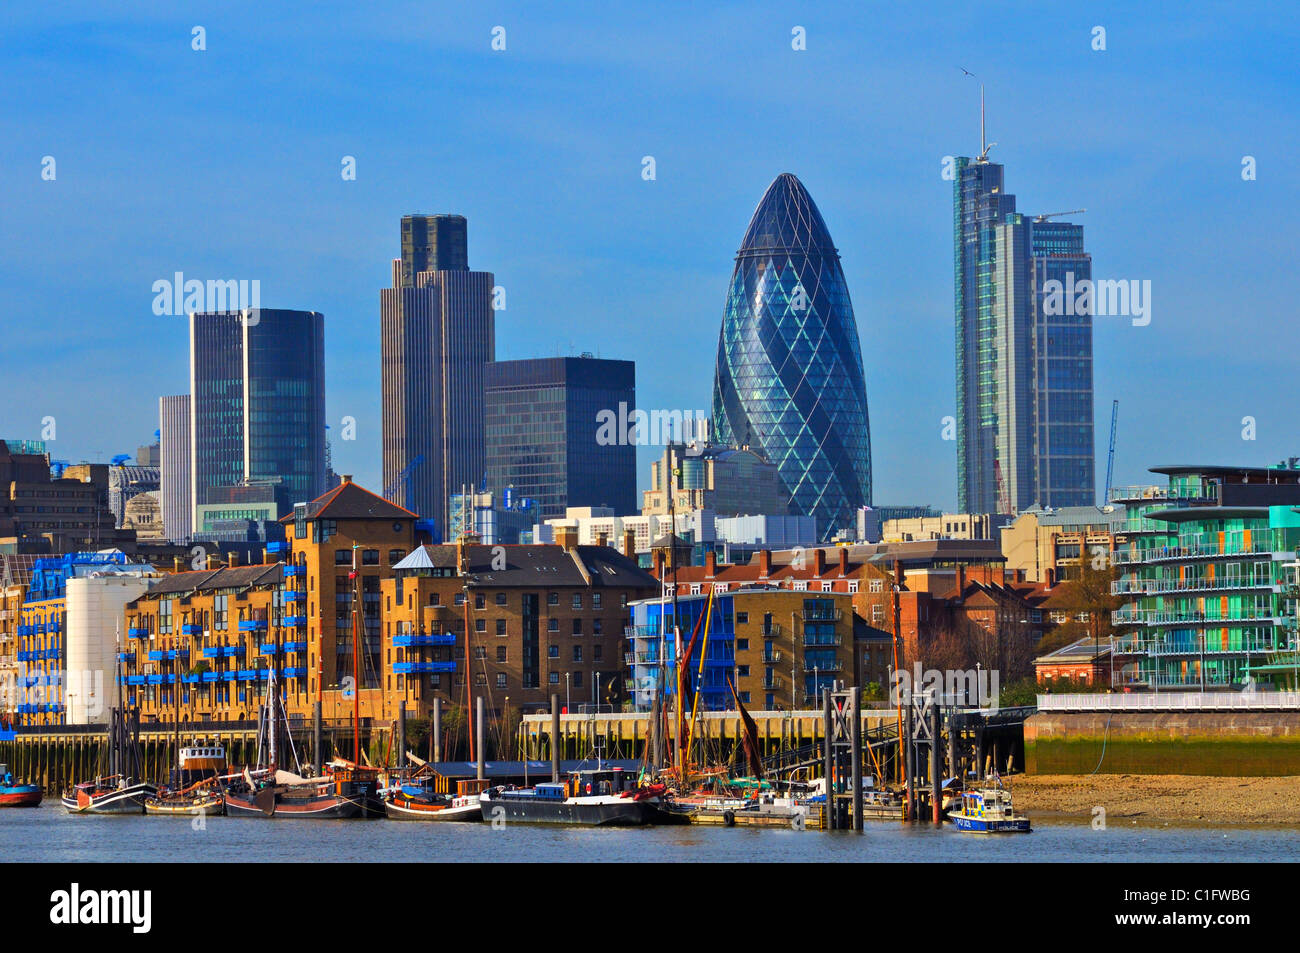 london skyline stock photos london skyline stock images. Black Bedroom Furniture Sets. Home Design Ideas